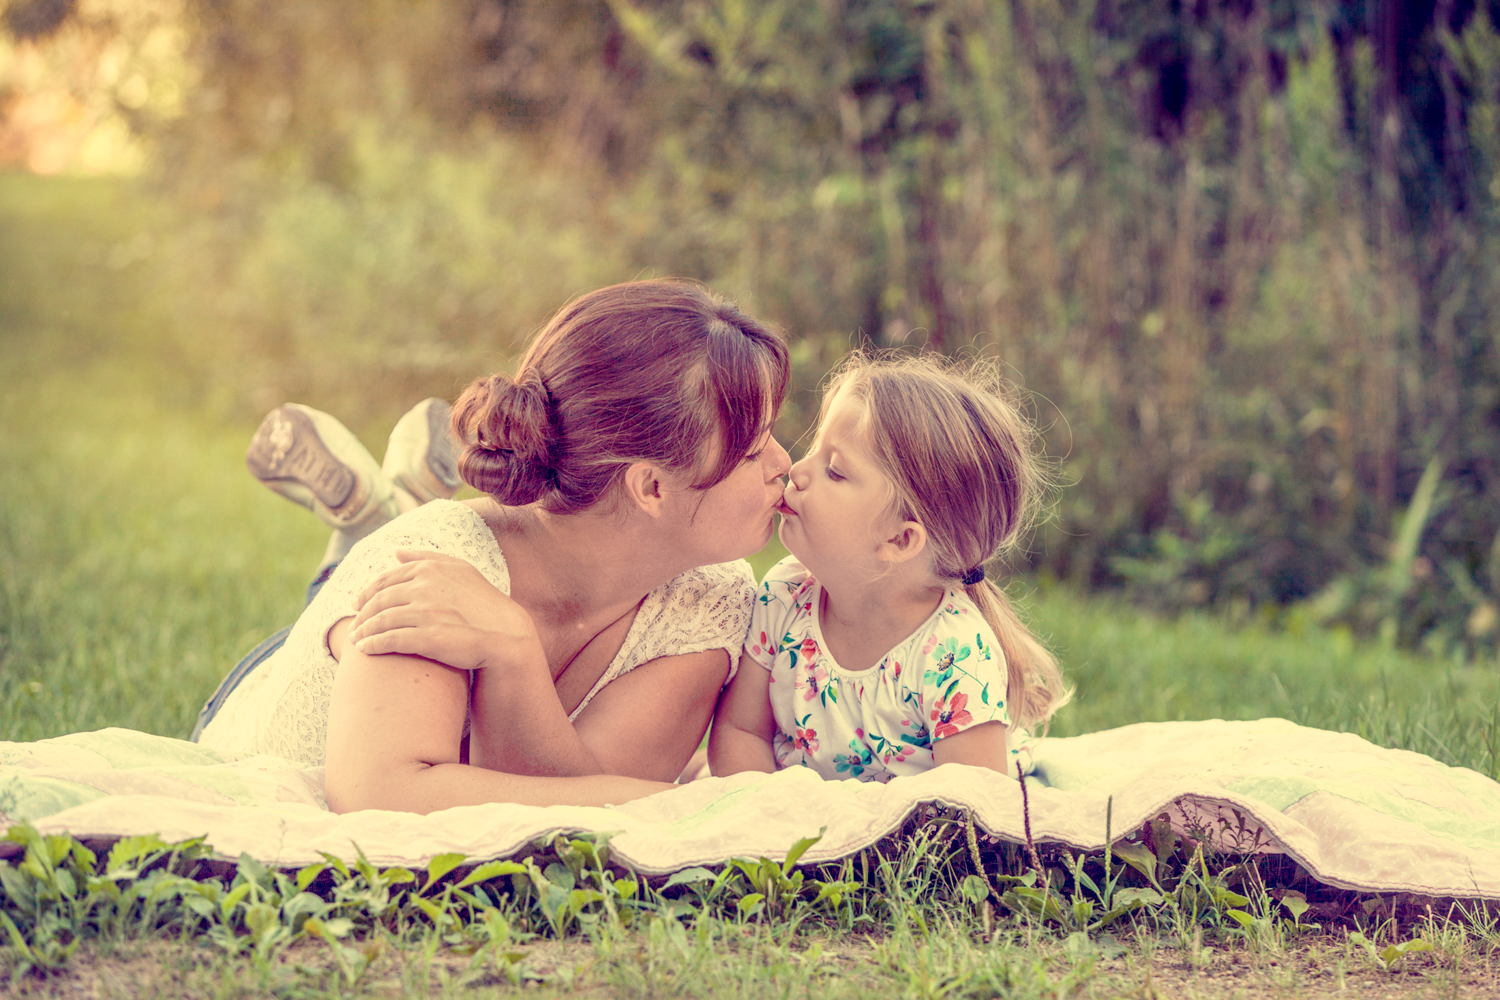 Portrait-Mothers-and-Daughters--mom-and-daughter-on-blanket-kissing-099.jpg